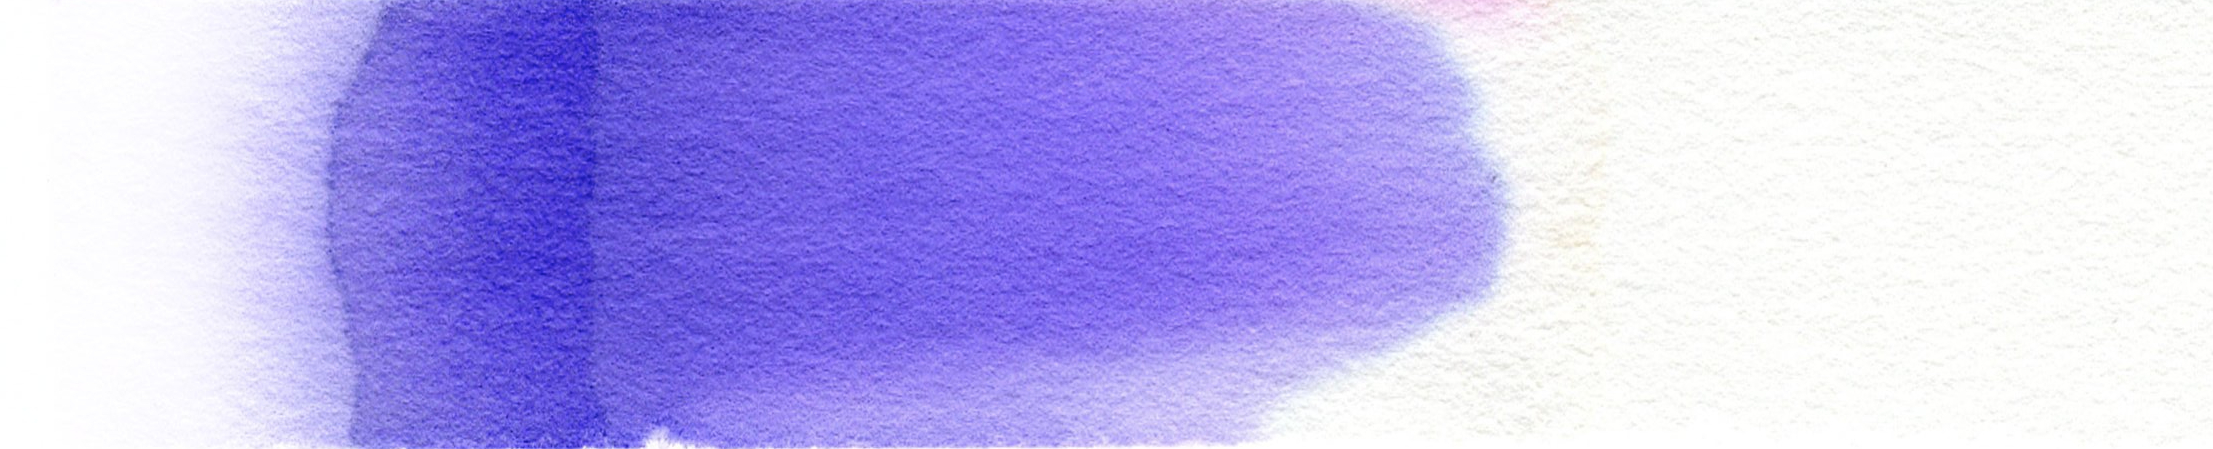 shaeffer_purple_chroma.jpg